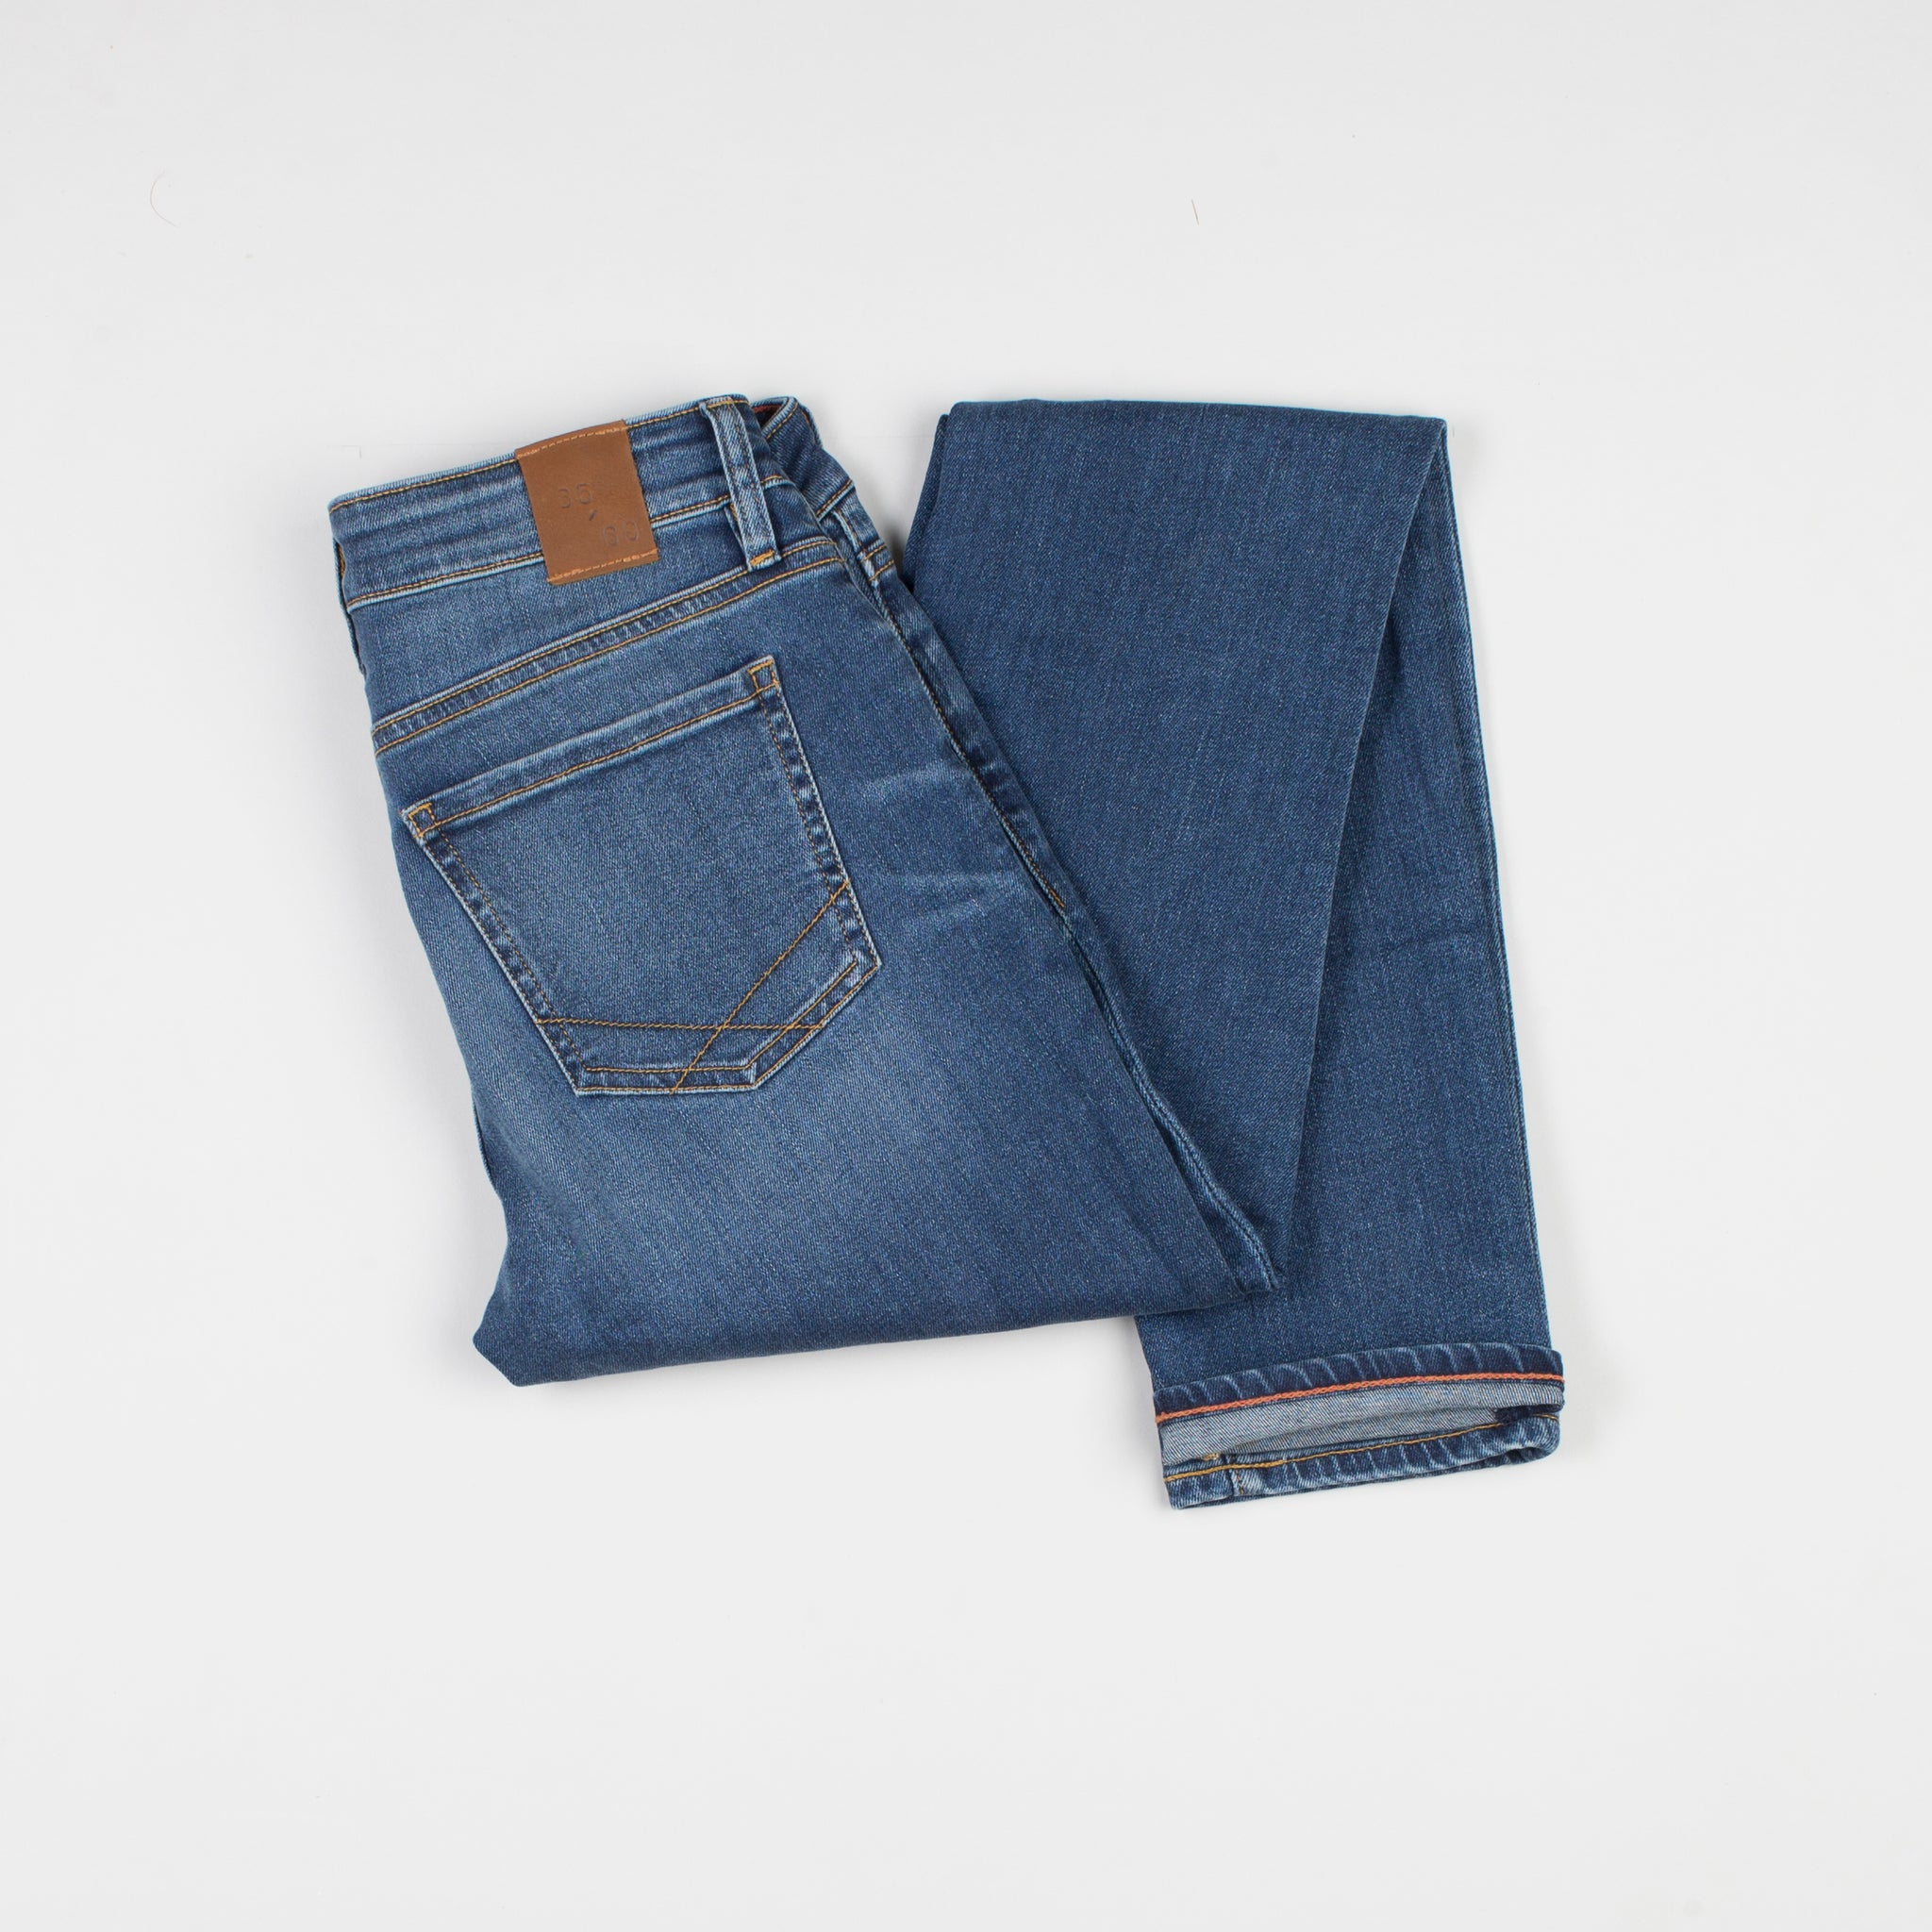 angle: perfecto  Raleigh Denim Workshop Surry mid-rise thin fit jeans in a classic wash, back view